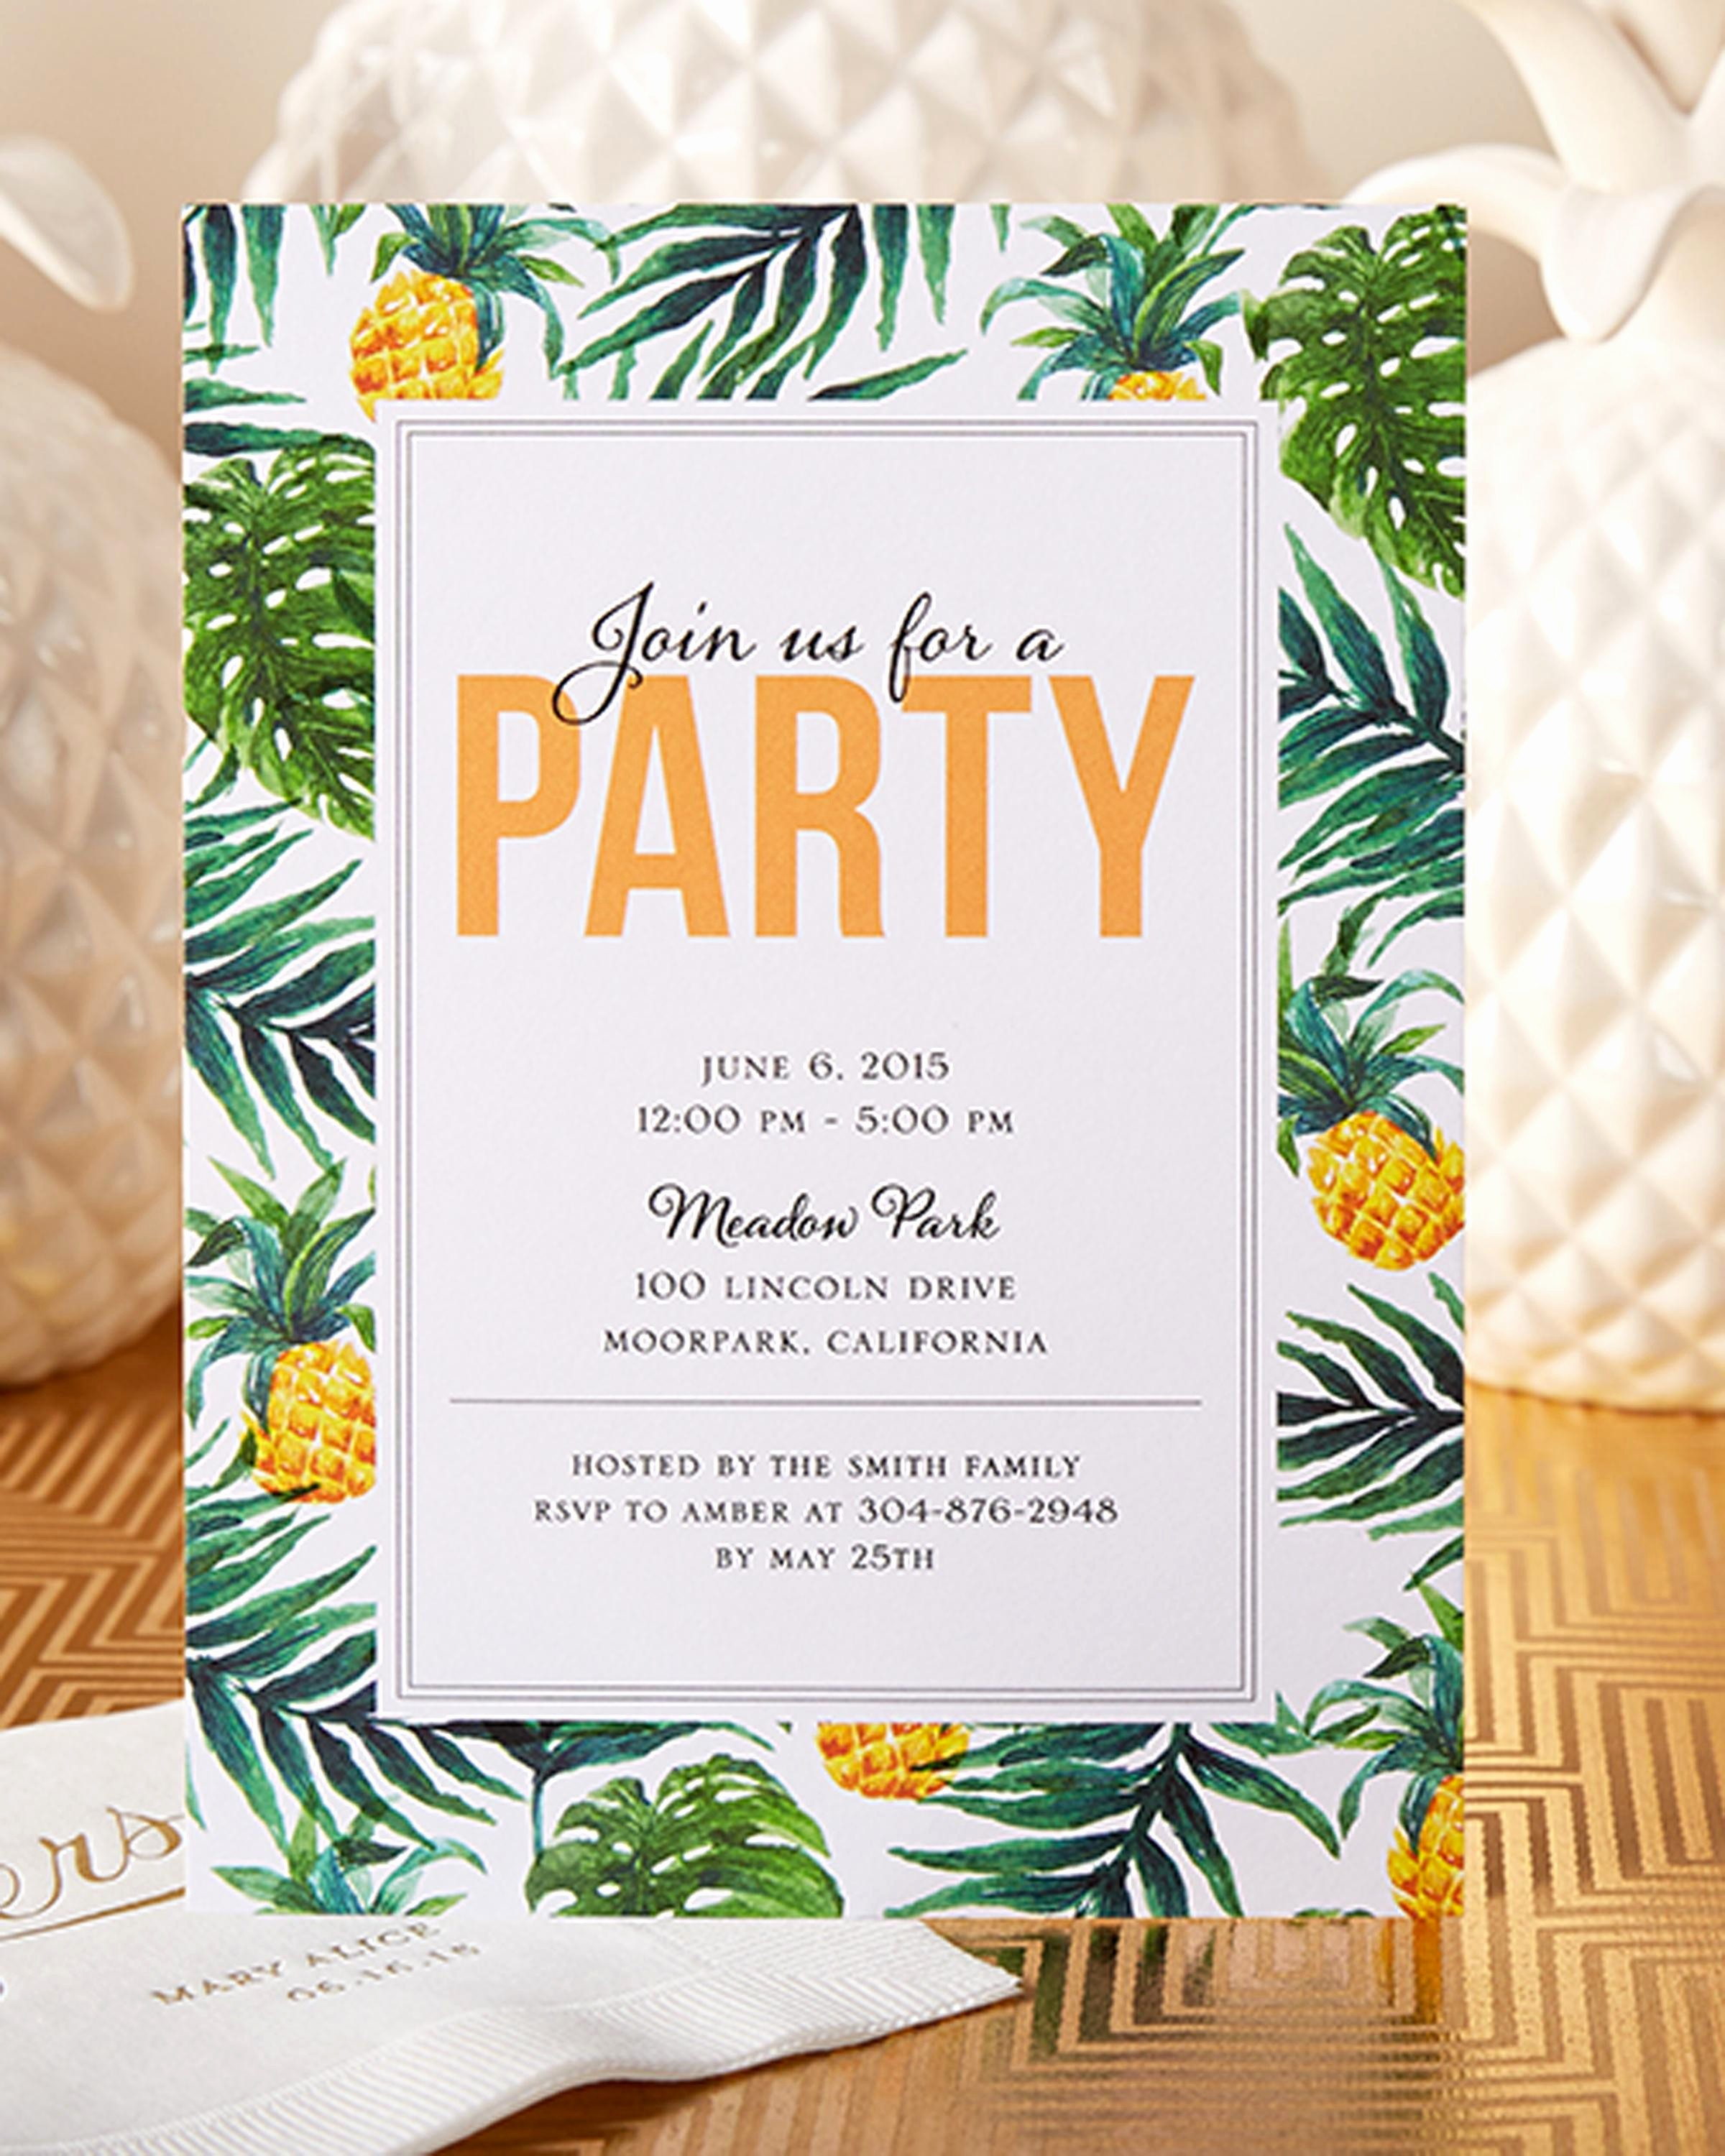 Hawaiian theme Party Invitations Printable Best Of Others Custom Luau Invitations for Your Tropical Getaway